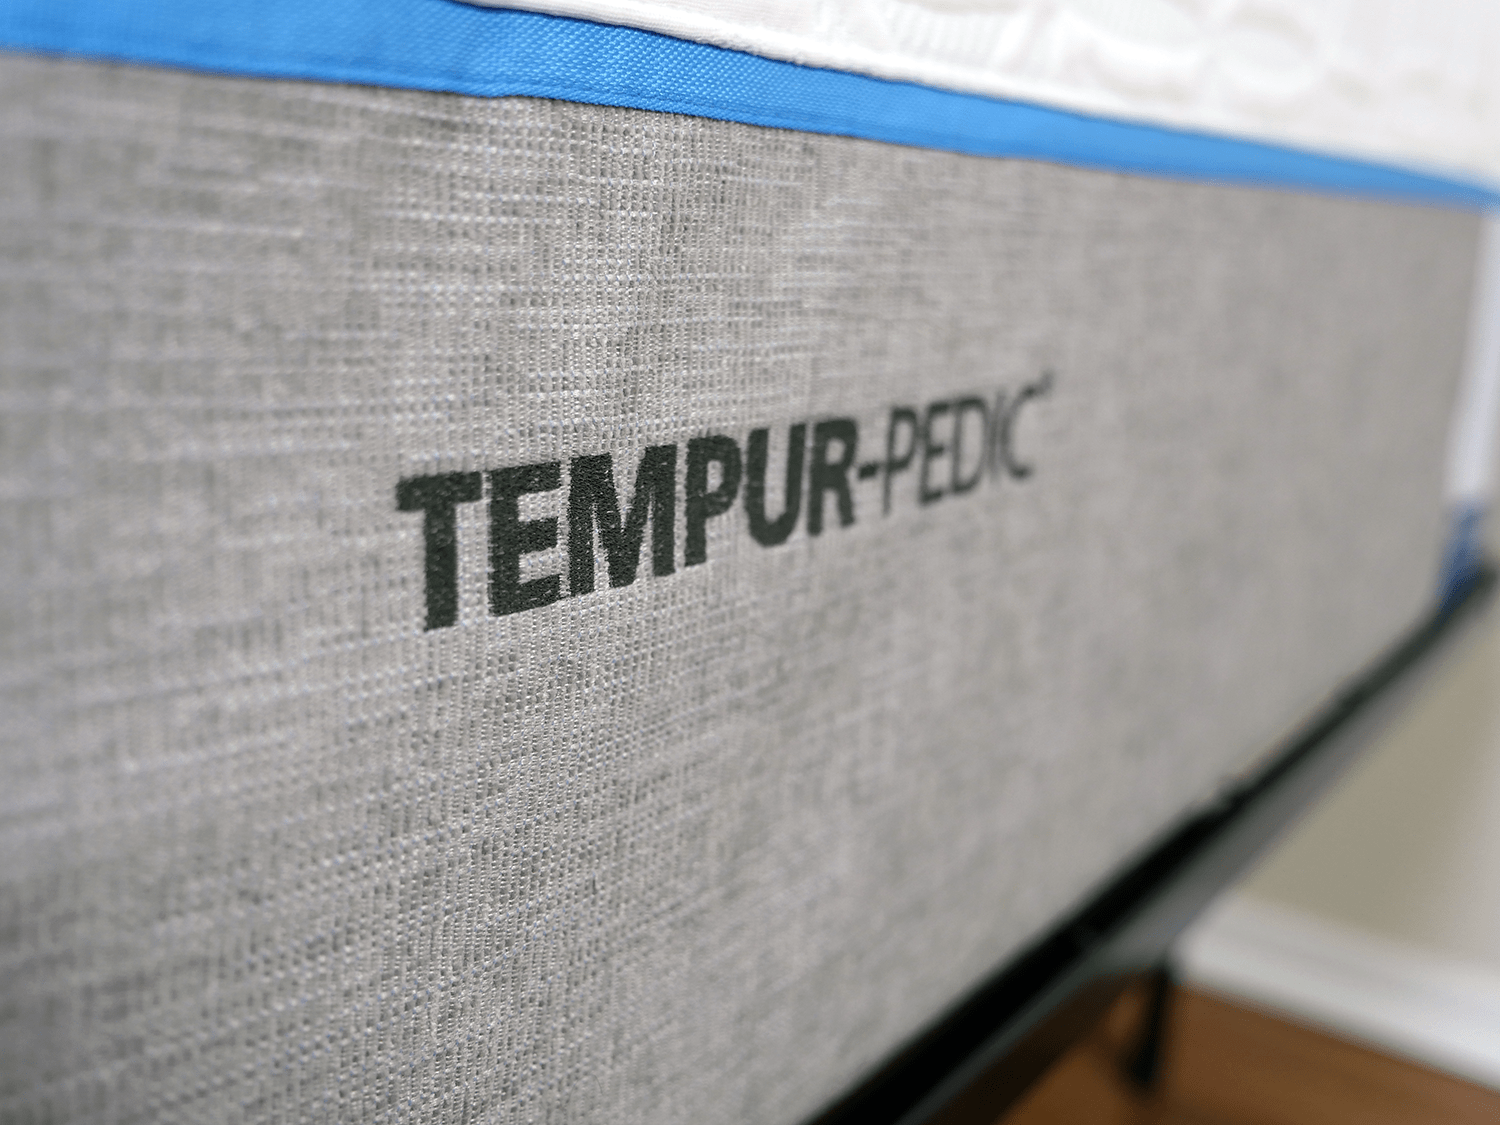 close up shot of the tempurpedic logo embossed to the foot of the mattress